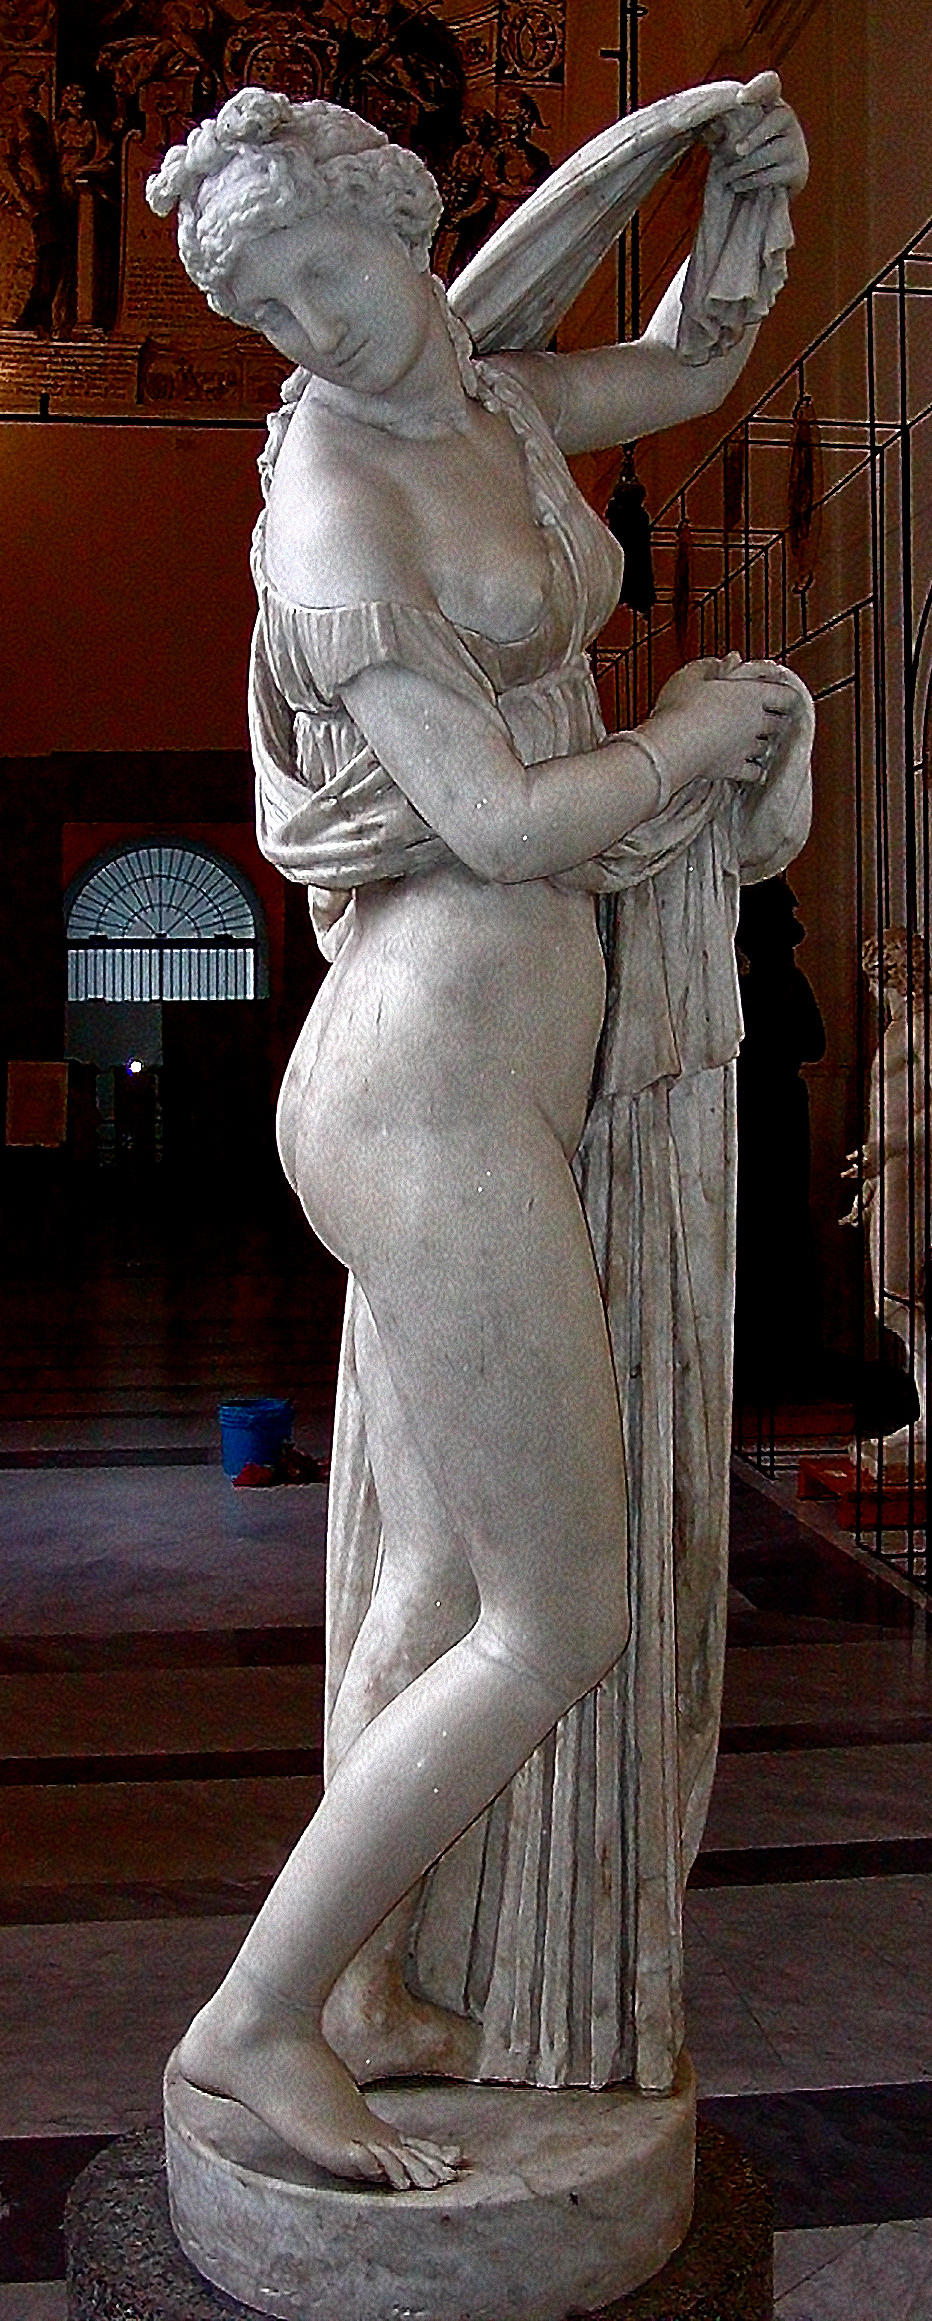 Venus Callypige, Napoli, Greco-Roman sculpture of an Hellenistic Greek sculpture, 9